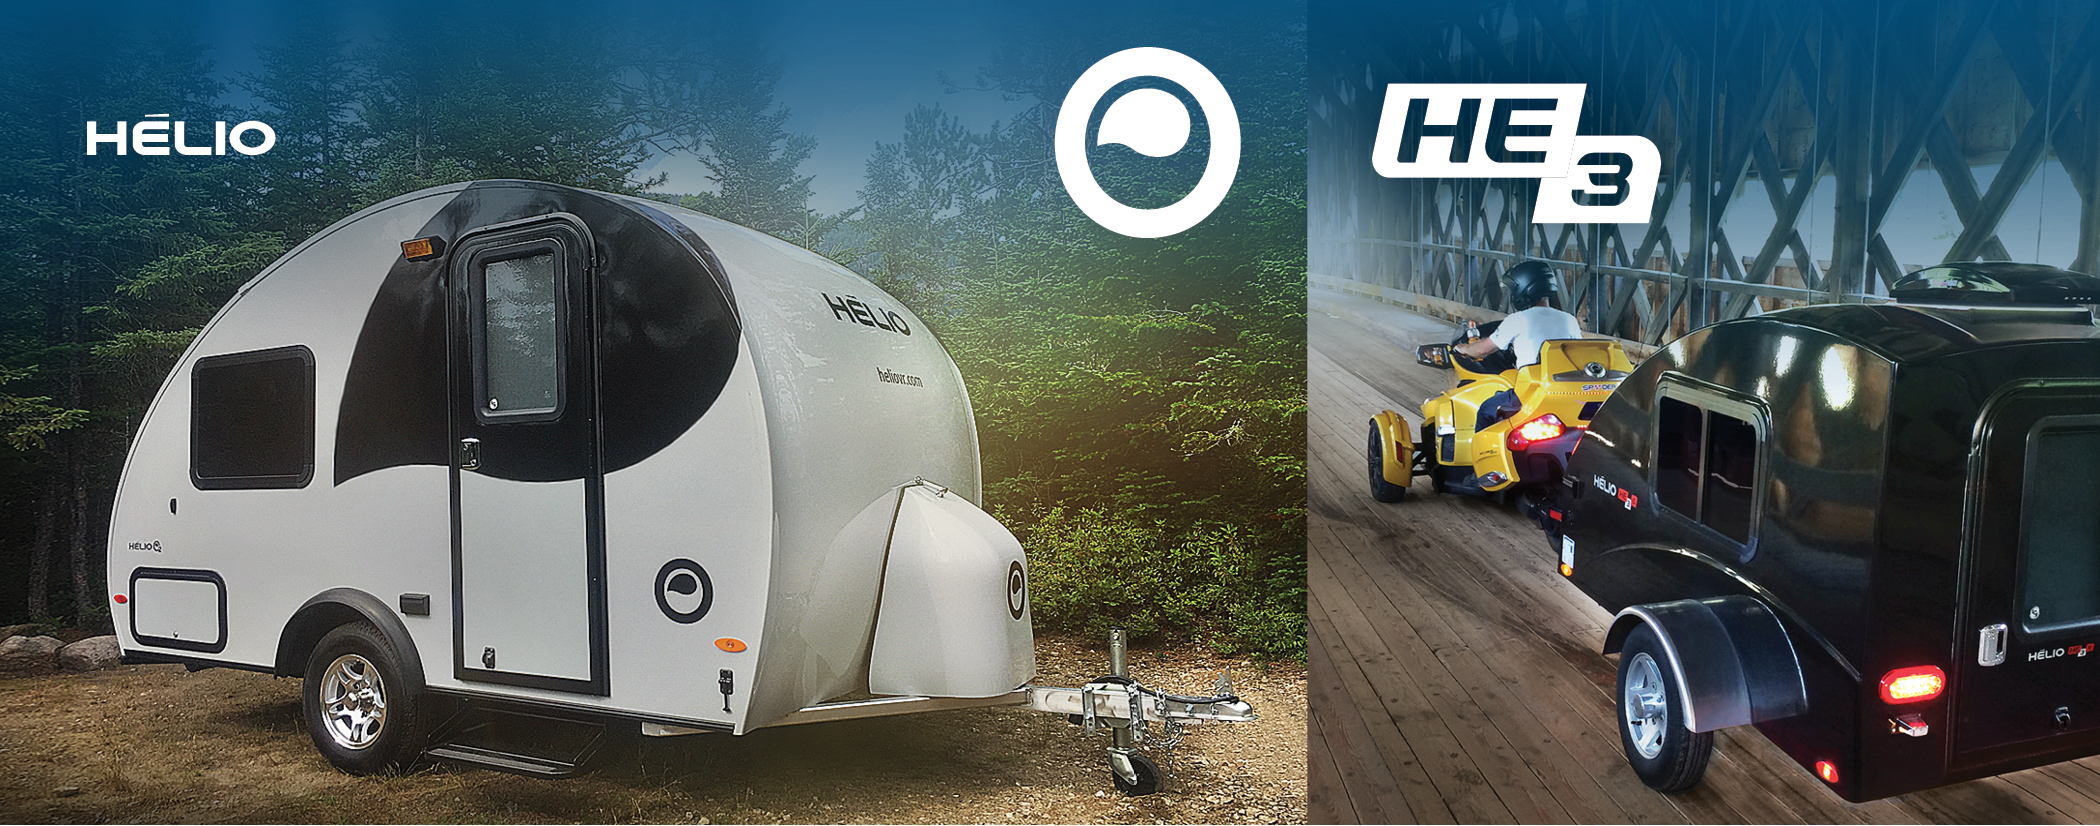 Helio - Ultralight Trailers and Mini Travel Trailers Hélio